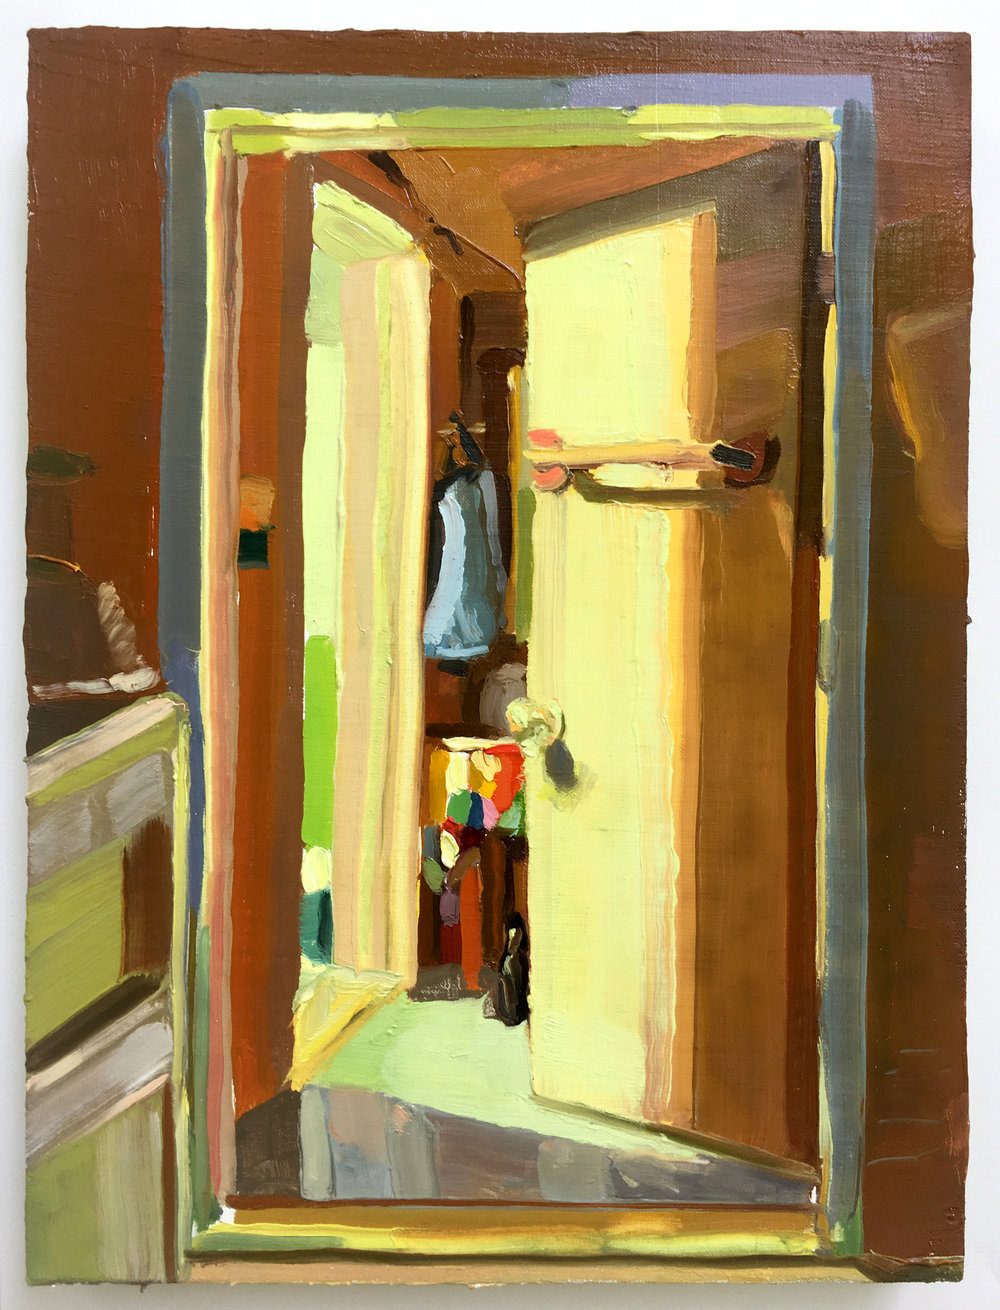 Keiran Brennan Hinton, Bathroom Light, 2017, oil on linen, 12 x 9 inches